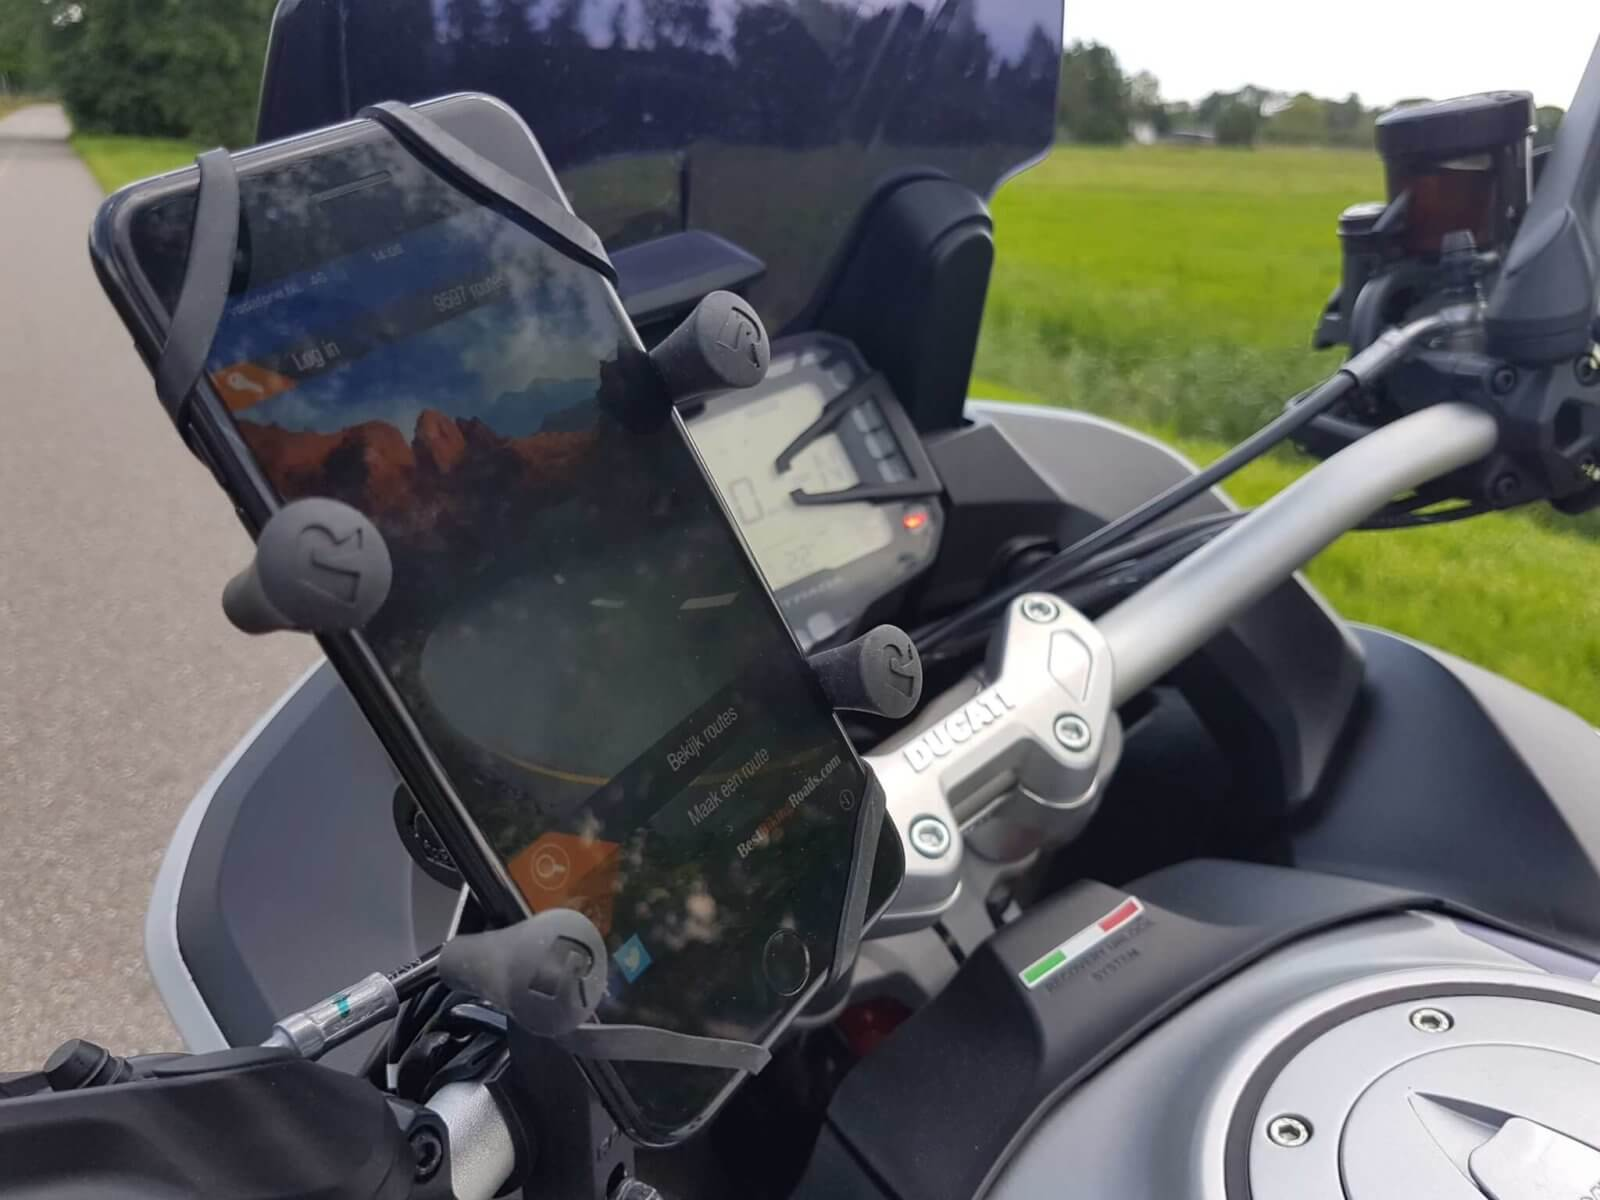 Best Riding Routes app voor smartphone